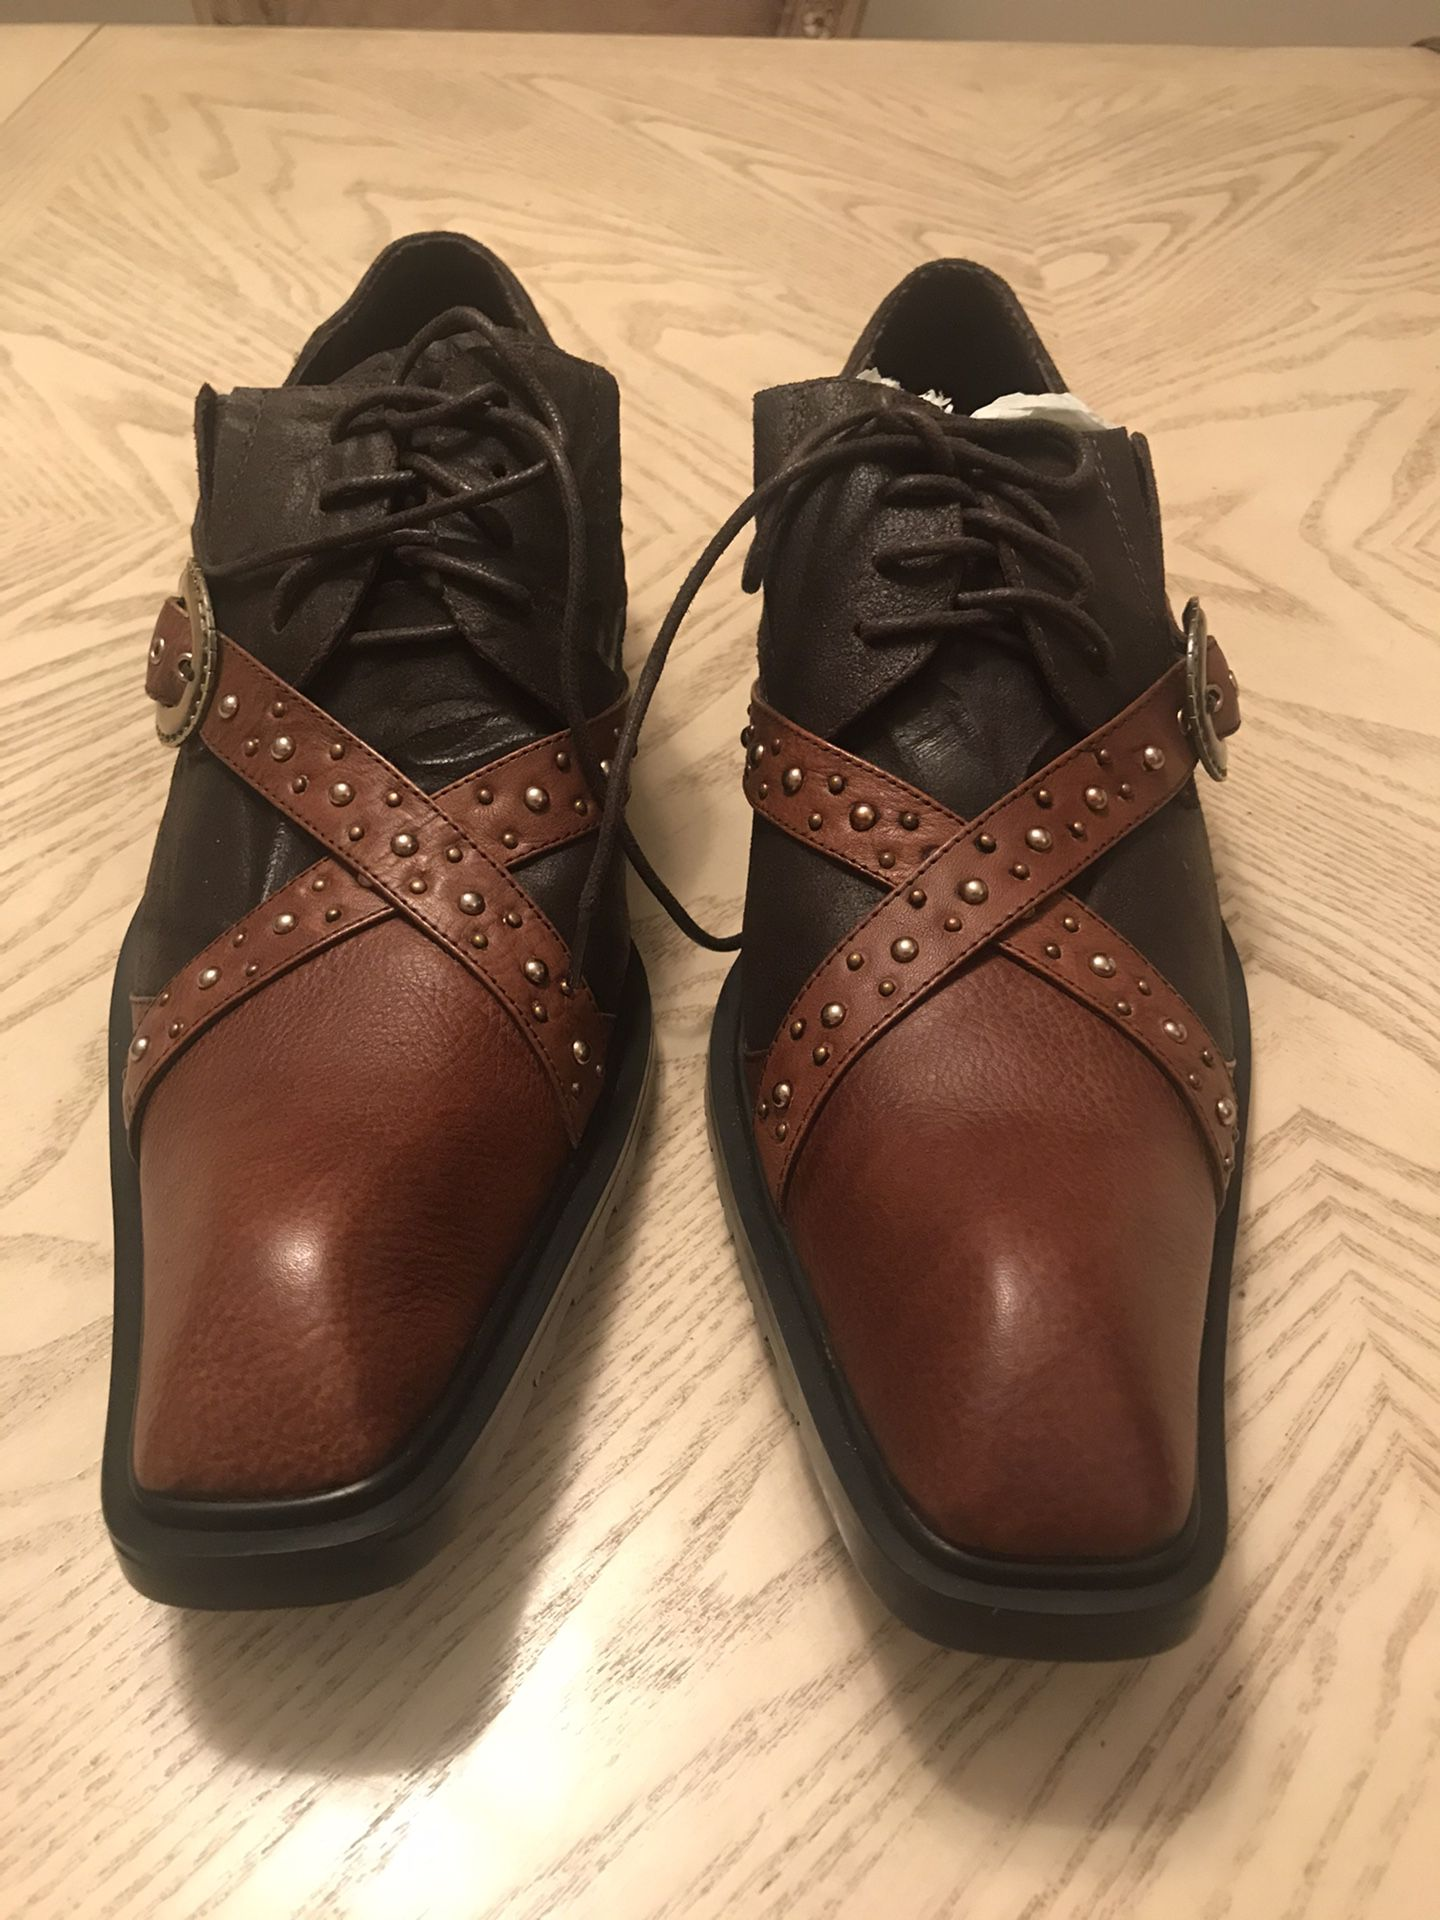 Aurelio Garcia Fiesso leather and suede shoes size 42